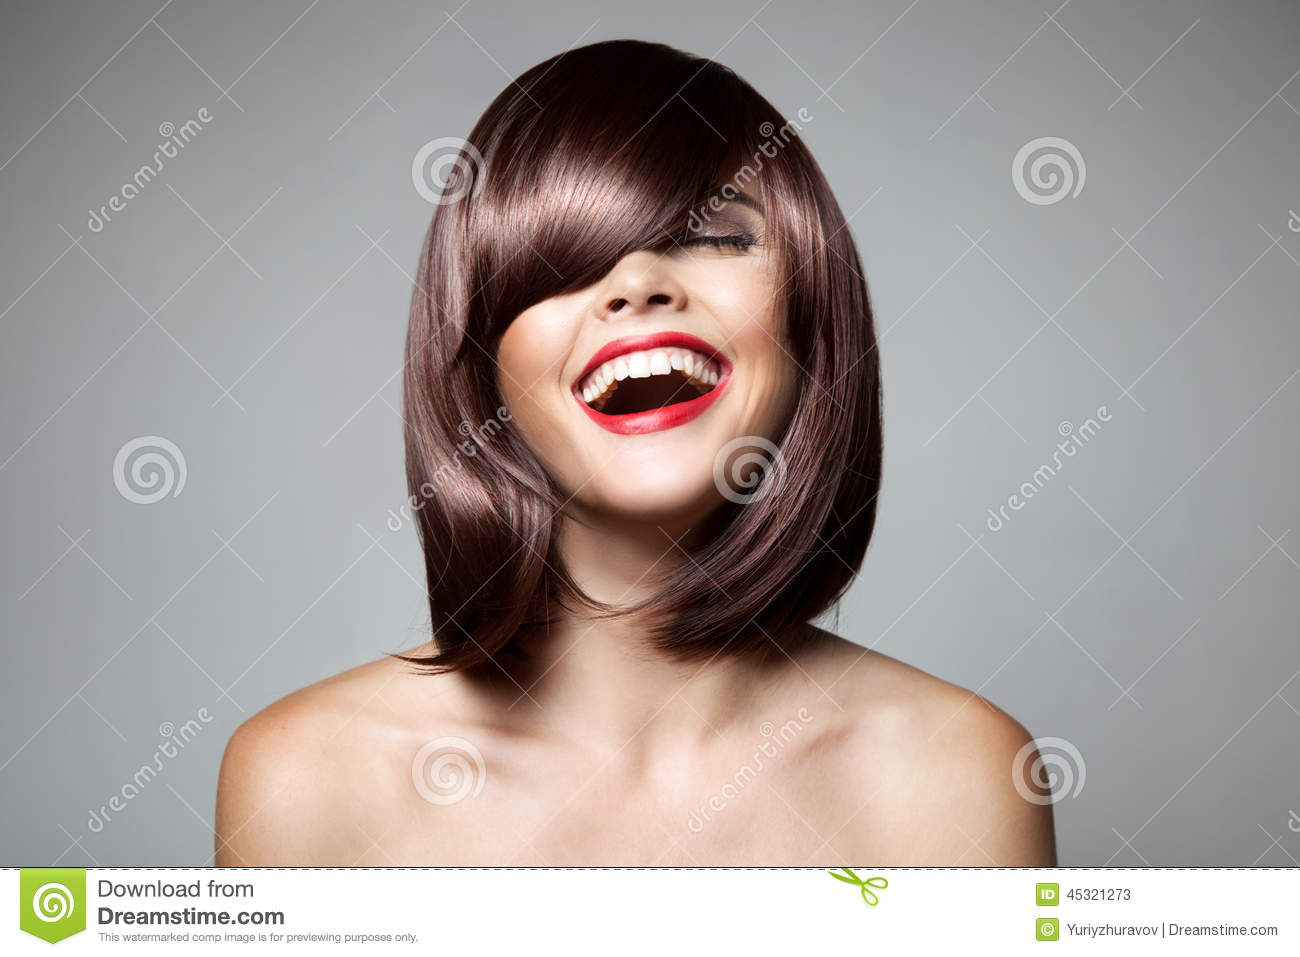 Smiling Beautiful Woman With Brown Short Hair.